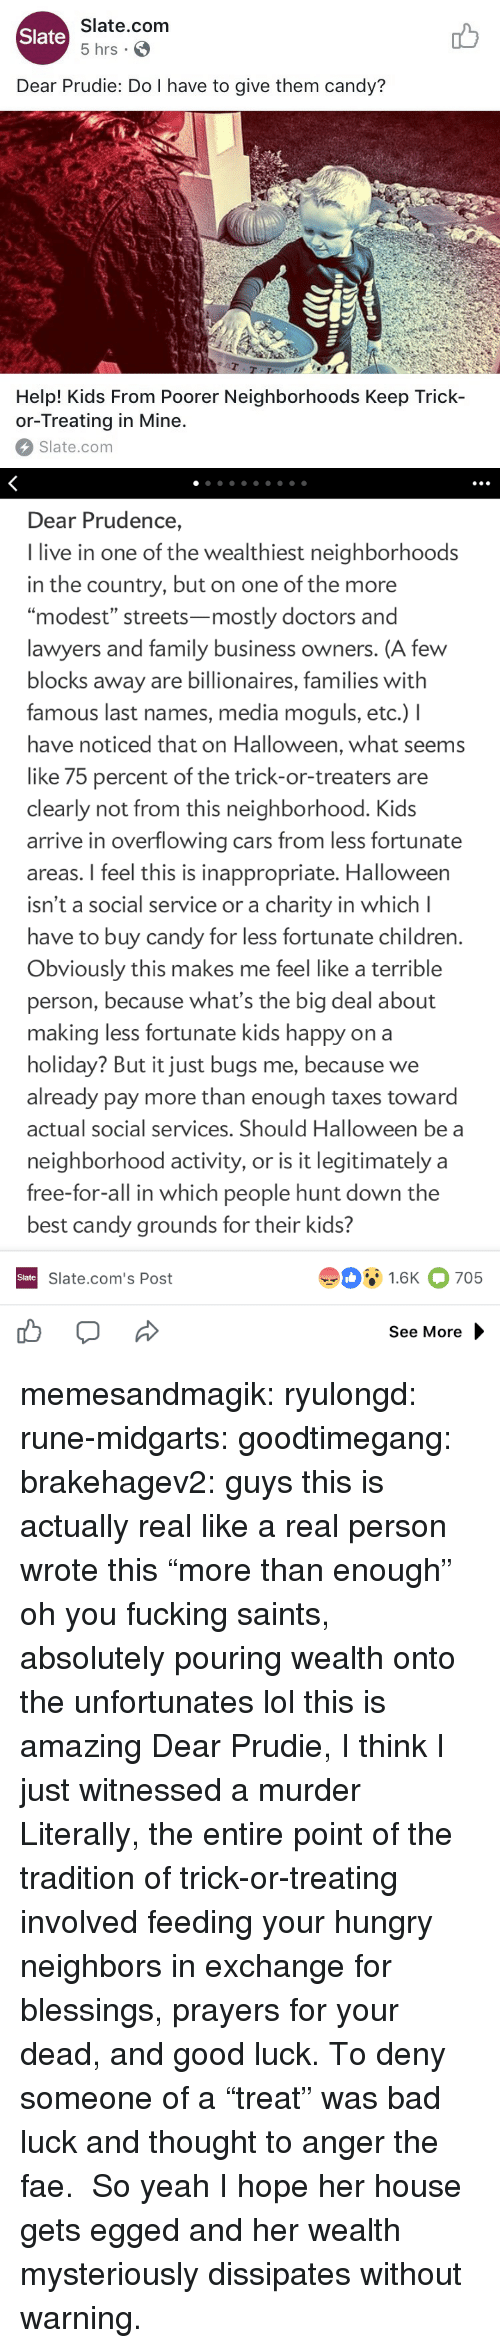 "modest: Slate.com  5 hrs .  Slate  Dear Prudie: Do I have to give them candy?  aT  T-T  Help! Kids From Poorer Neighborhoods Keep Trick-  or-Treating in Mine.  Slate.com   Dear Prudence,  I live in one of the wealthiest neighborhoods  in the country, but on one of the more  ""modest"" streets-mostly doctors and  lawyers and family business owners. (A few  blocks away are billionaires, families with  famous last names, media moguls, etc.) I  have noticed that on Halloween, what seems  like 75 percent of the trick-or-treaters are  clearly not from this neighborhood. Kids  arrive in overflowing cars from less fortunate  areas. I feel this is inappropriate. Halloween  isn't a social service or a charity in which l  have to buy candy for less fortunate children  Obviously this makes me feel like a terrible  person, because what's the big deal about  making less fortunate kids happy on a  holiday? But it just bugs me, because we  already pay more than enough taxes toward  actual social services. Should Halloween be a  neighborhood activity, or is it legitimately a  free-for-all in which people hunt down the  best candy grounds for their kids?  91.6K 705  Slate  Slate.com's Post  See More memesandmagik: ryulongd:  rune-midgarts:  goodtimegang:  brakehagev2:  guys this is actually real like a real person wrote this  ""more than enough"" oh you fucking saints, absolutely pouring wealth onto the unfortunates   lol this is amazing   Dear Prudie, I think I just witnessed a murder  Literally, the entire point of the tradition of trick-or-treating involved feeding your hungry neighbors in exchange for blessings, prayers for your dead, and good luck. To deny someone of a ""treat"" was bad luck and thought to anger the fae.  So yeah I hope her house gets egged and her wealth mysteriously dissipates without warning."